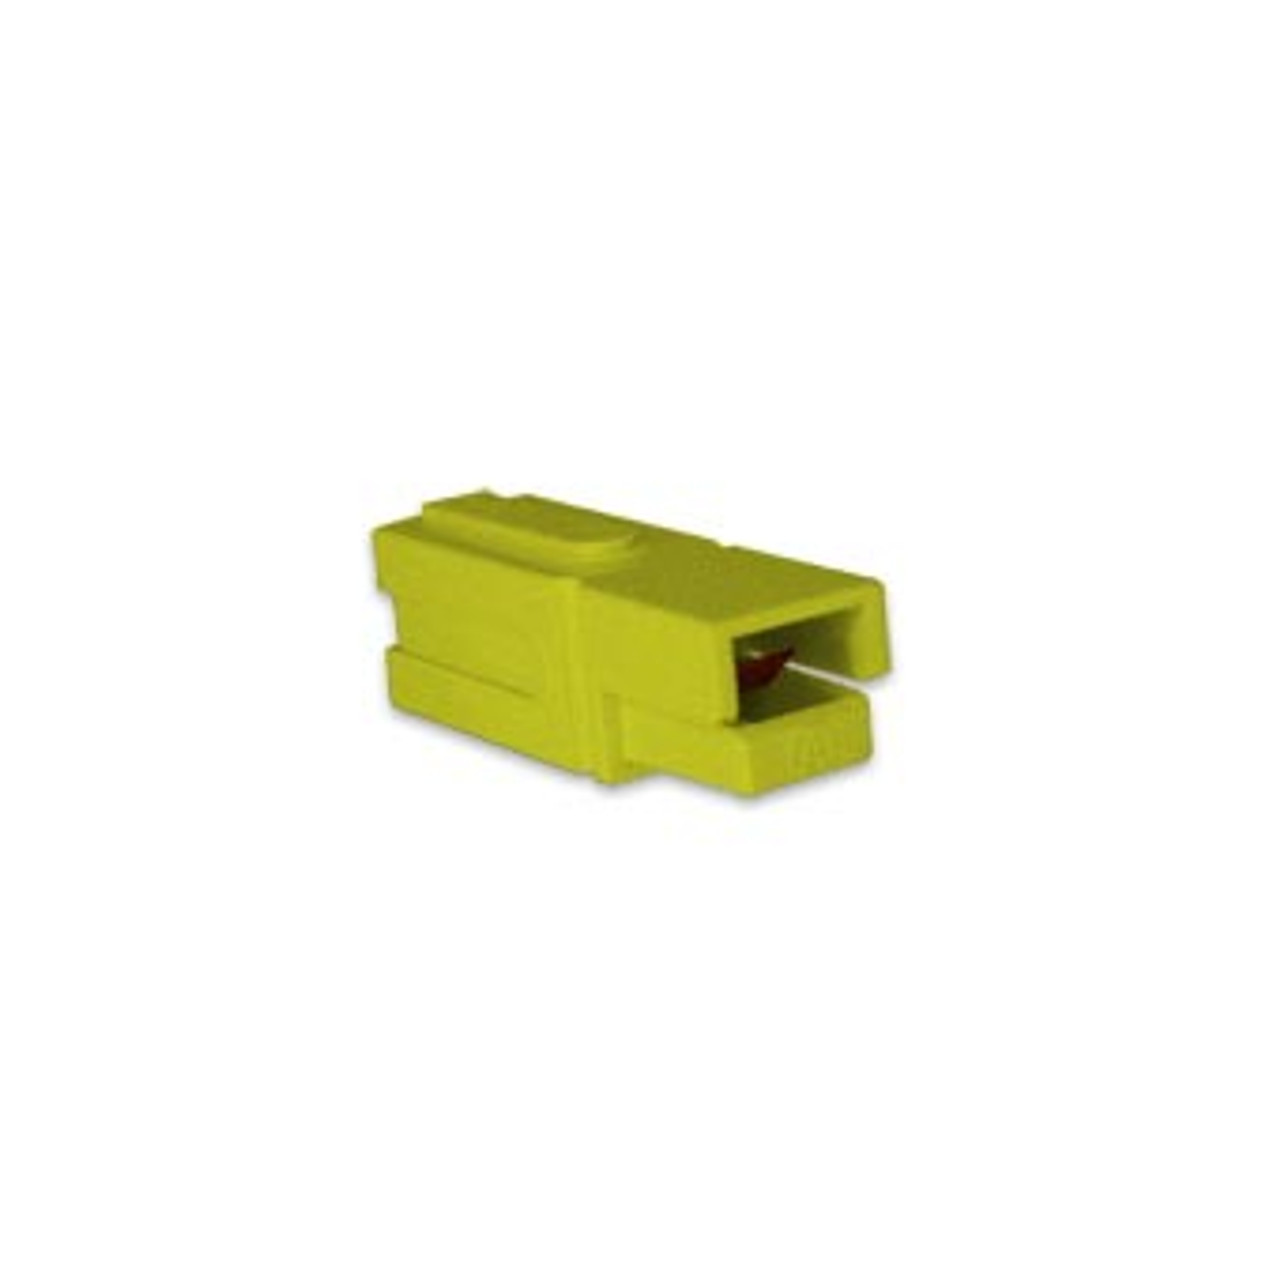 30AMP HOUSING YELLOW POWER POLE